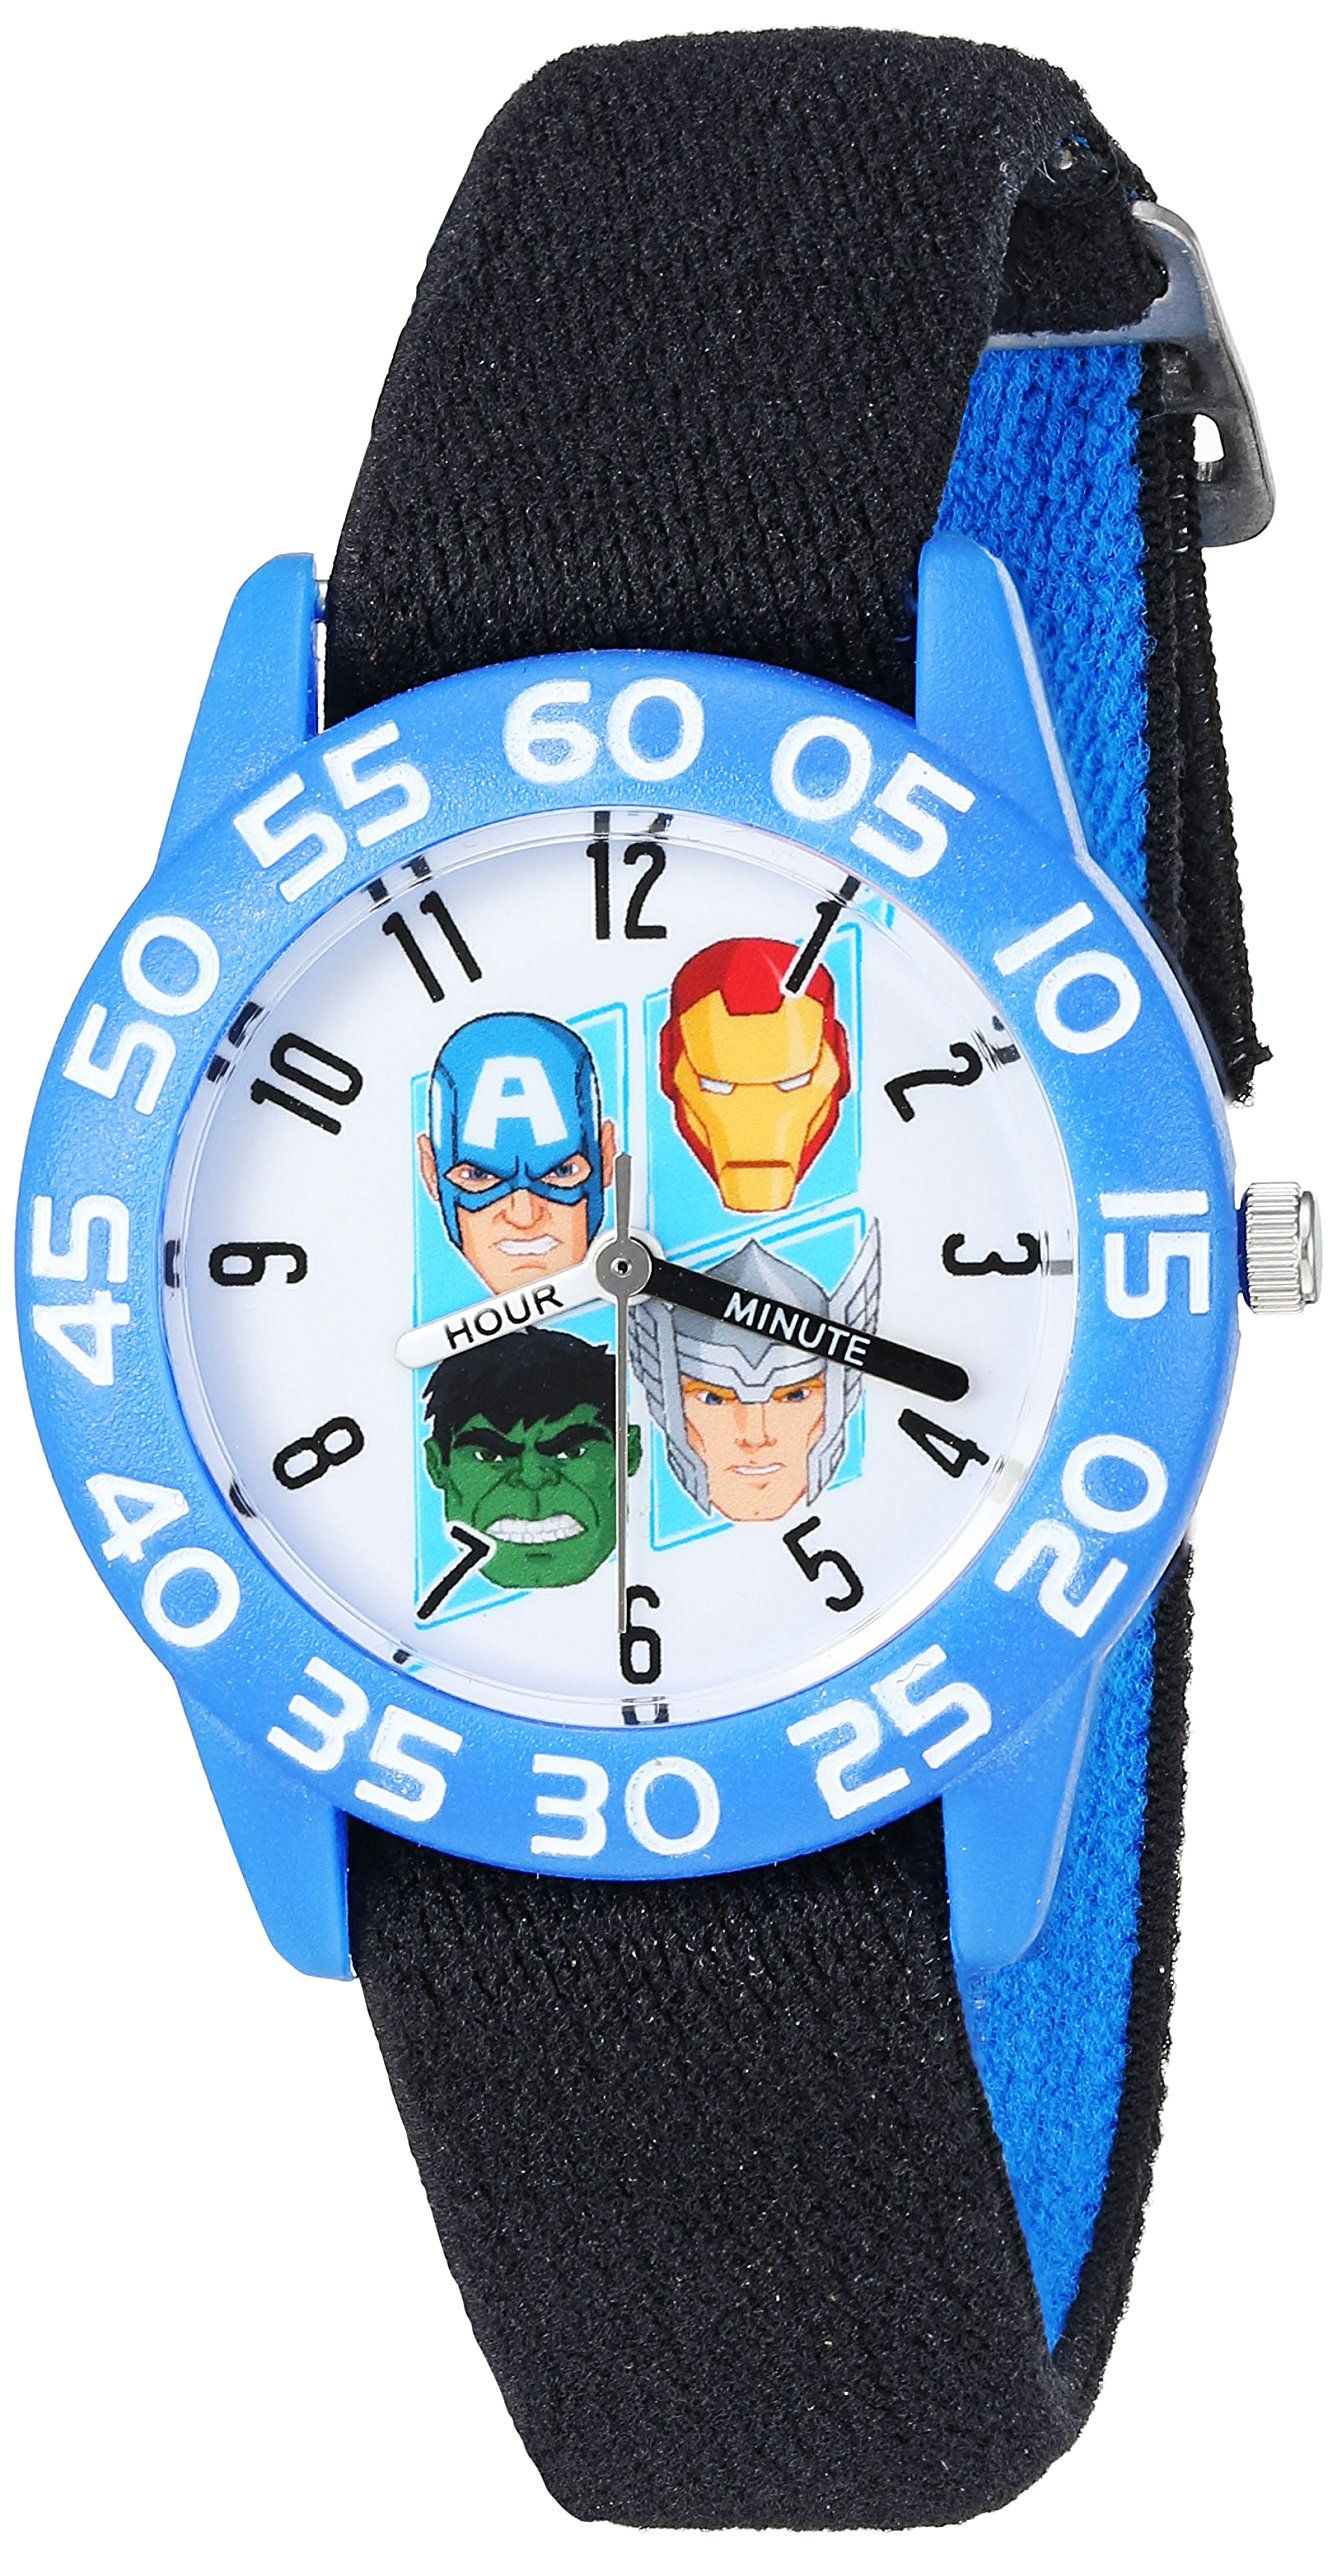 Marvel Boy's 'Captain America' Quartz Plastic and Nylon Automatic Watch, Color:Black (Model: W003238). Meets or exceeds all US Government requirements and regulations for Kid's watches. 1 year limited manufacturer's warranty. Analog-quartz Movement. Case Diameter: 32mm. Water Resistant To 30m (100ft): In General, Withstands Splashes or Brief Immersion In Water, but not Suitable for Swimming or Bathing.